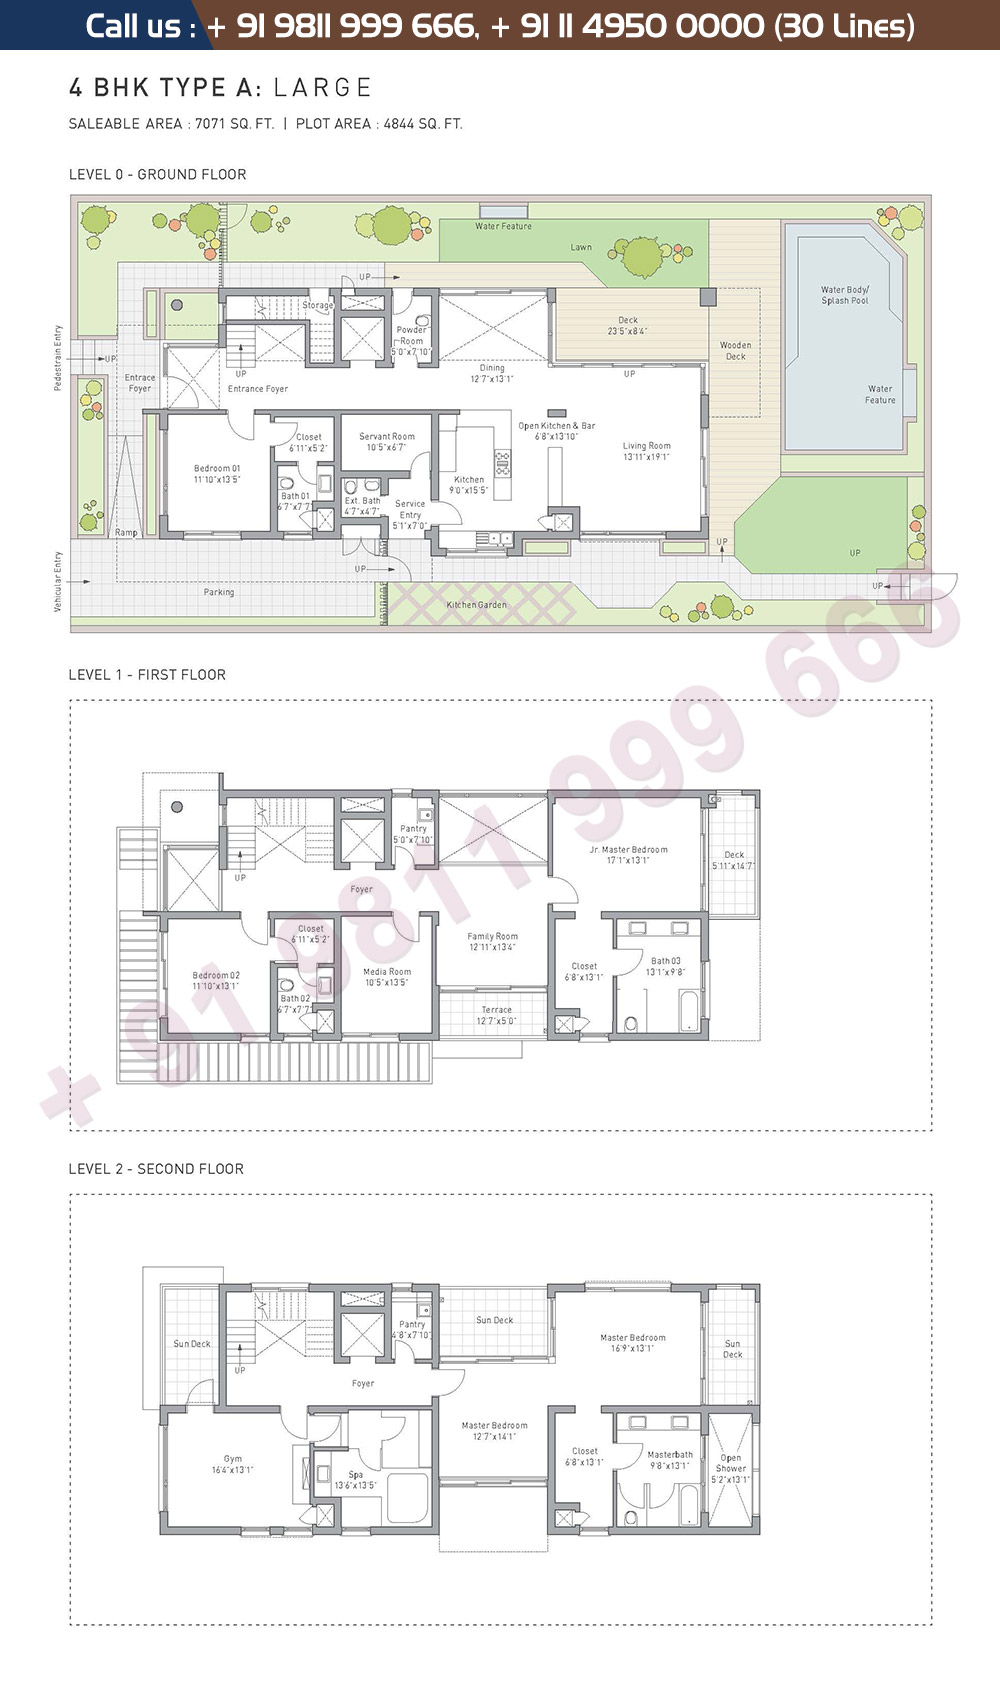 4 BHK Type A Large: 7071 Sq.Ft.